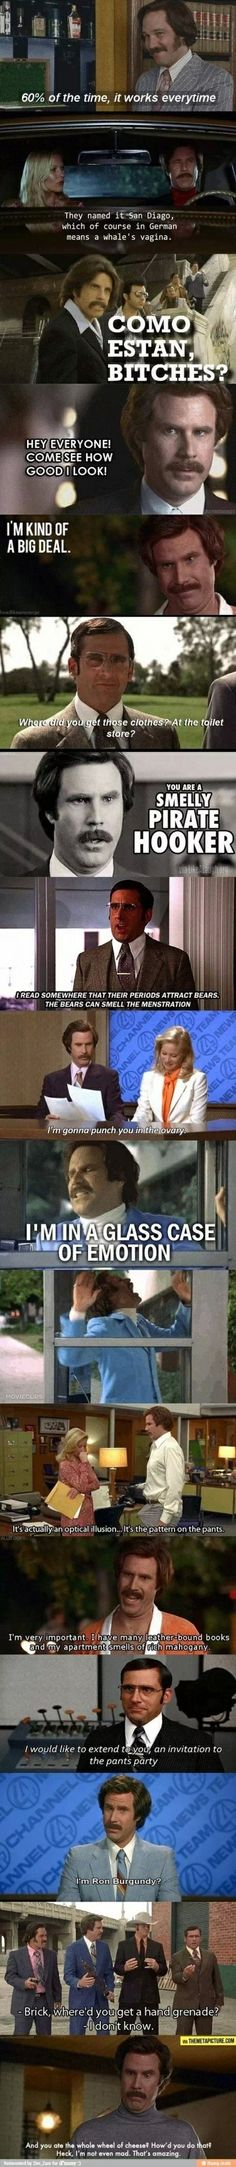 so excited for Anchorman 2